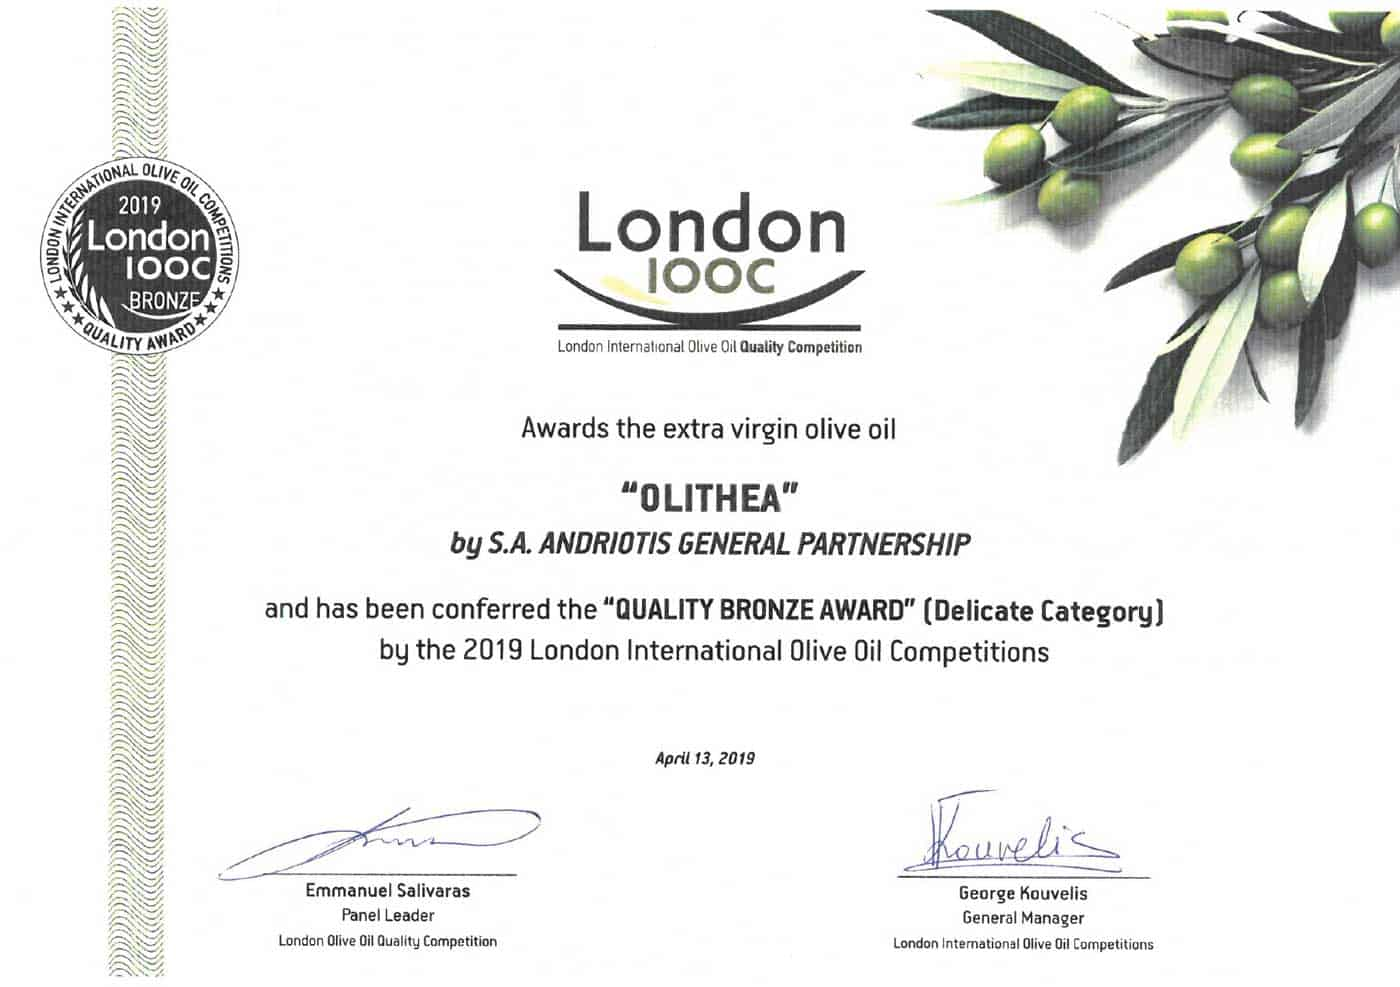 2019-london-100c-international-olive-oil-quality-competition-bronze-award-delicate-category